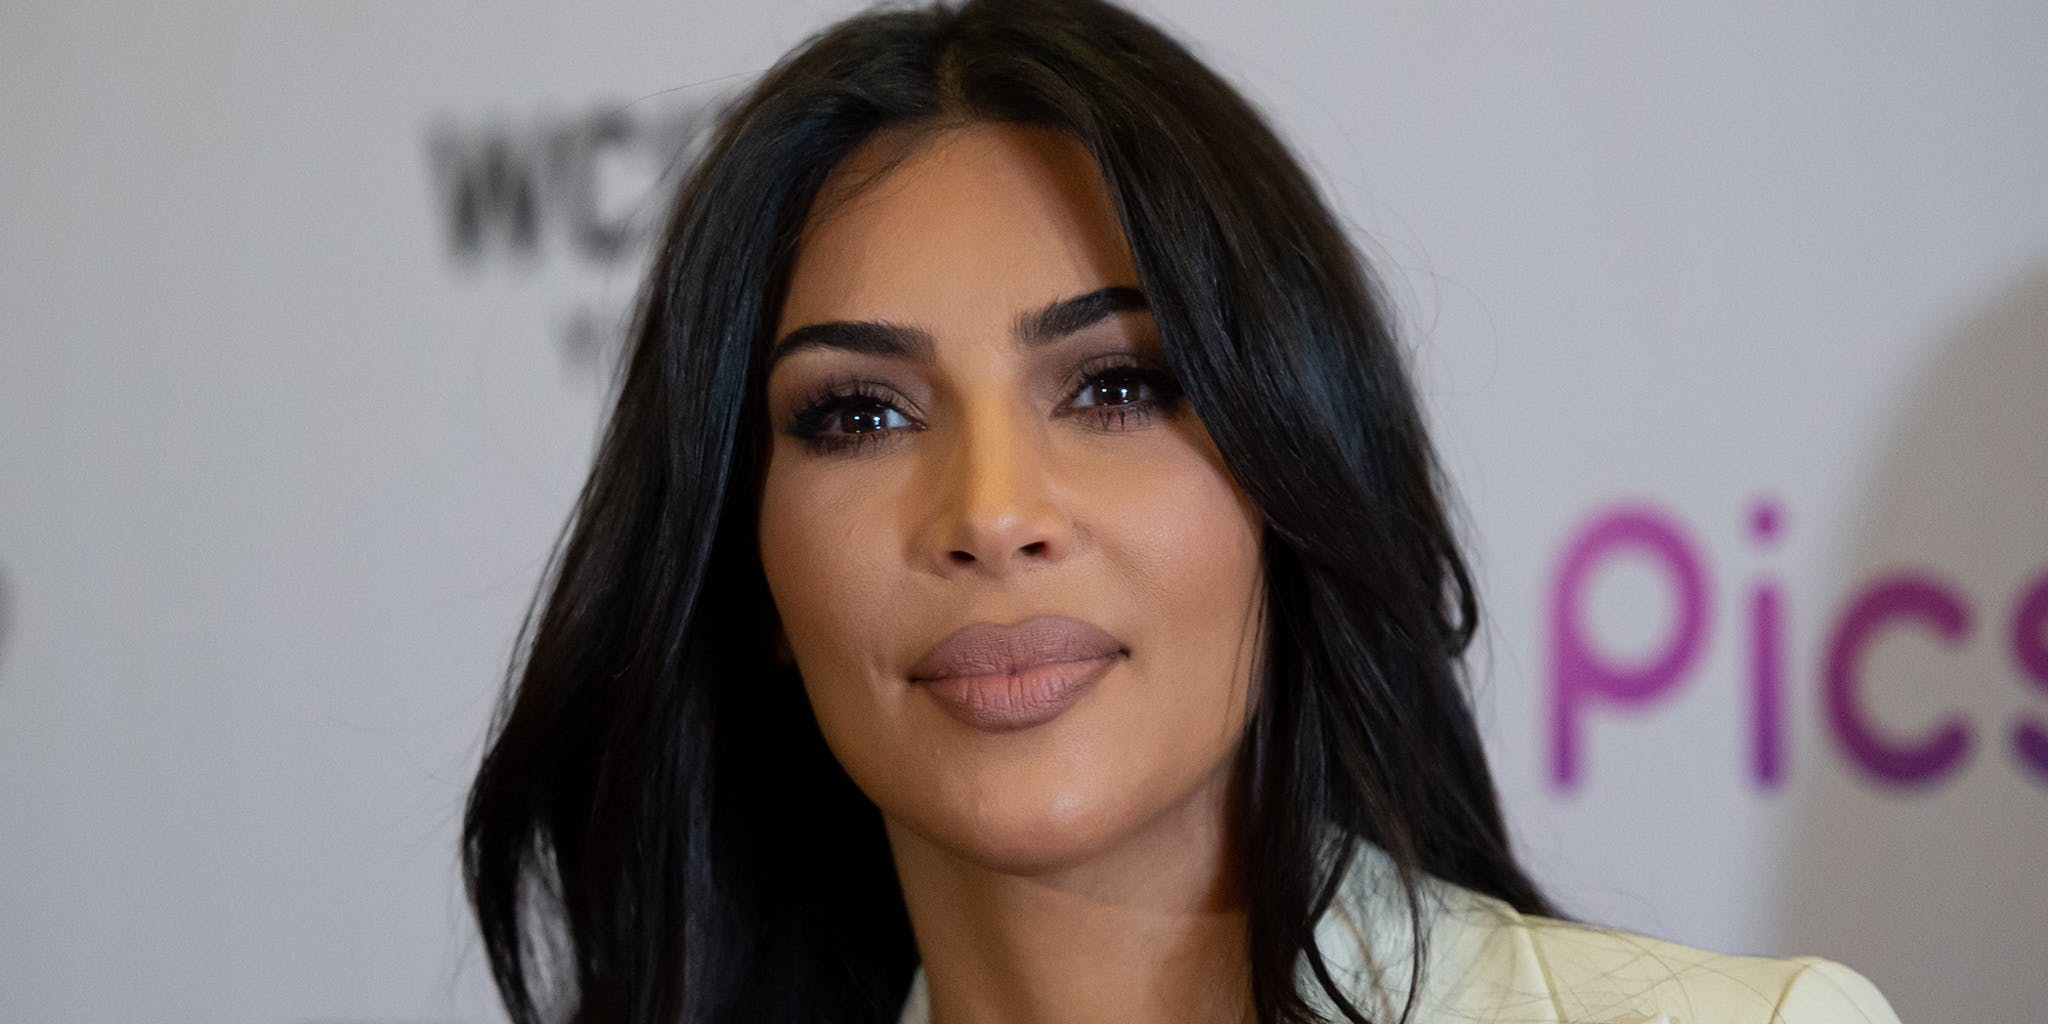 Staff Says Kim Kardashian Withheld Wages in New Lawsuit